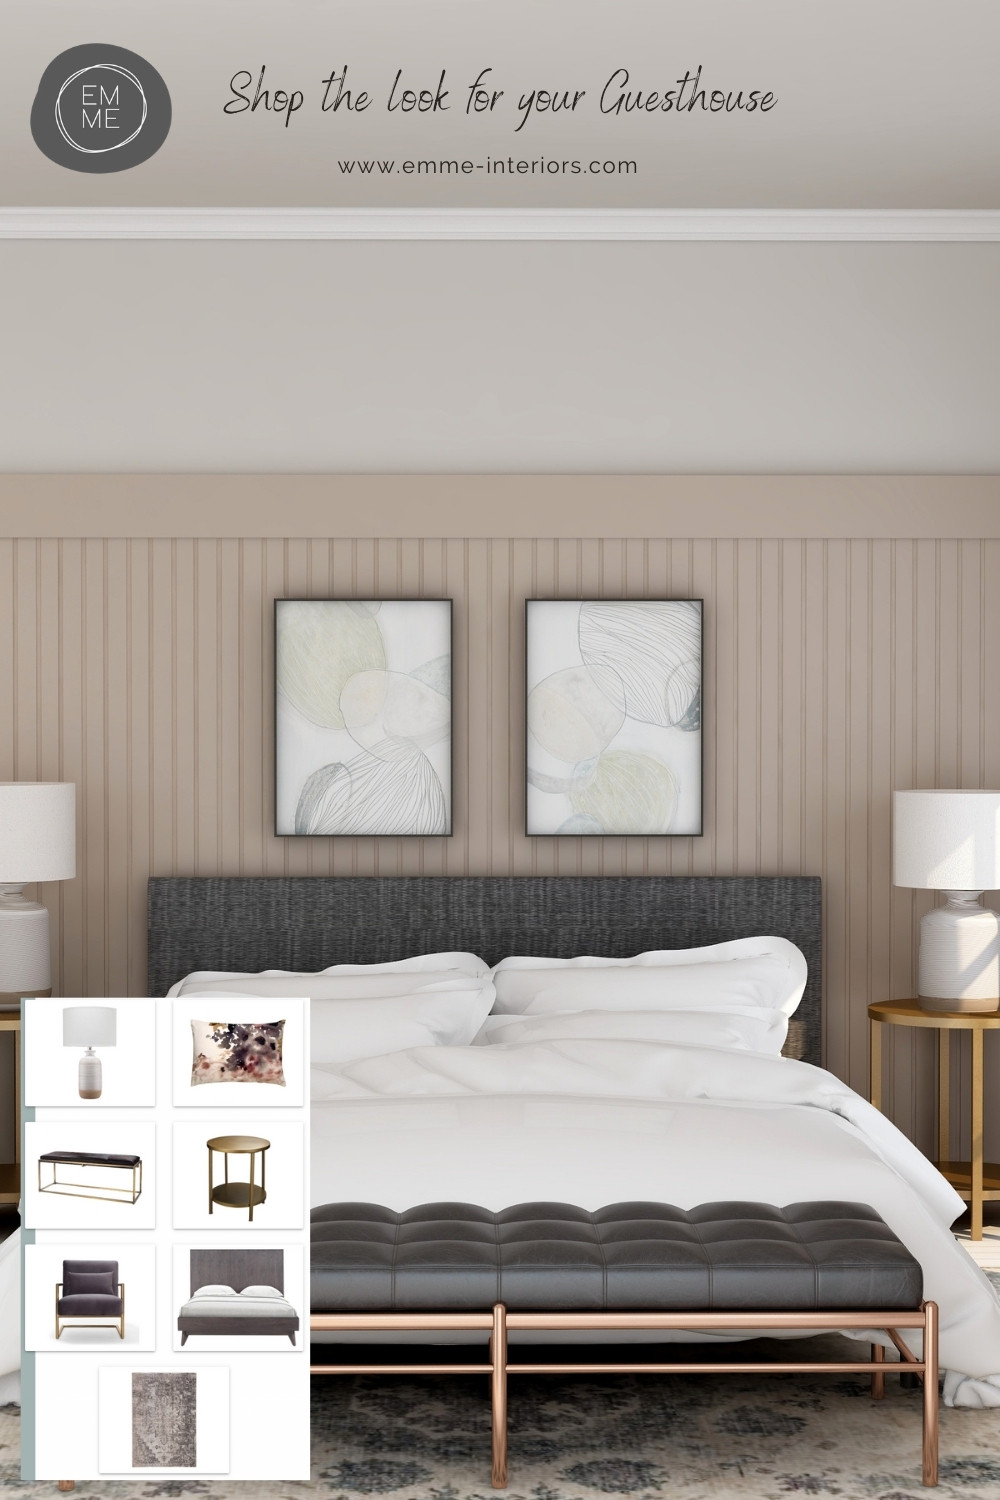 Shop the Look to re-create this bedroom with pink and grey tones. Bedroom furniture. Dead Salmon, Farrow & Ball.  Bedroom design, Guesthouse design, Guesthouse bedroom design.